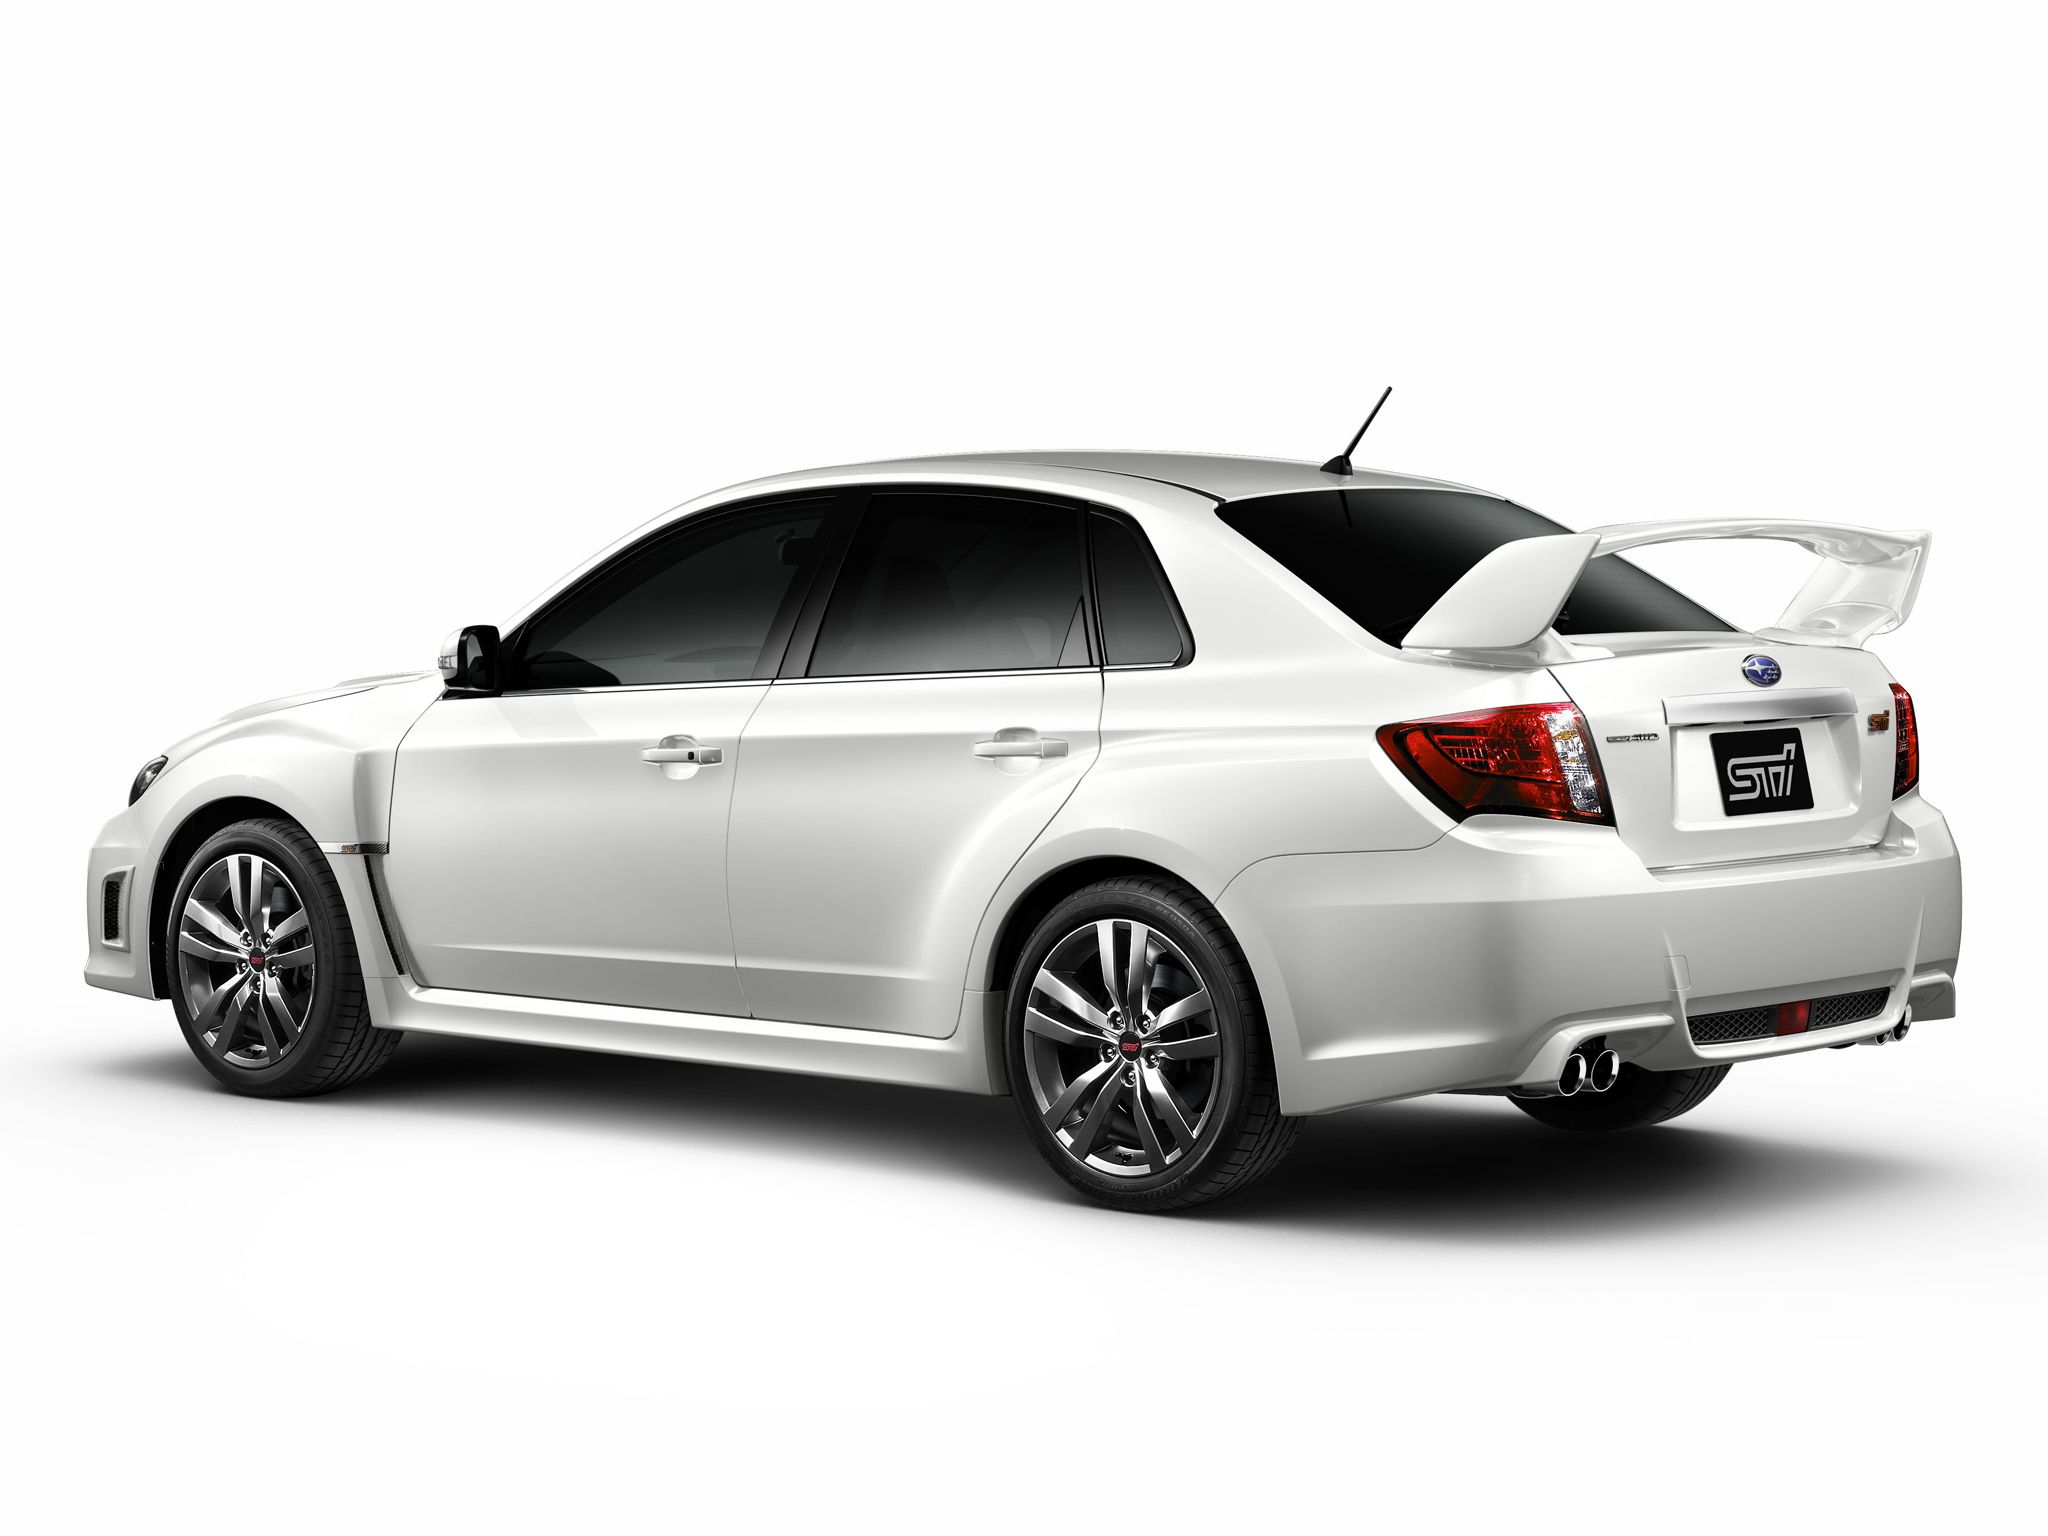 e1fb374c1a1348d2677aaf580a968c8b Take A Look About 2002 Subaru Impreza Wrx Specs